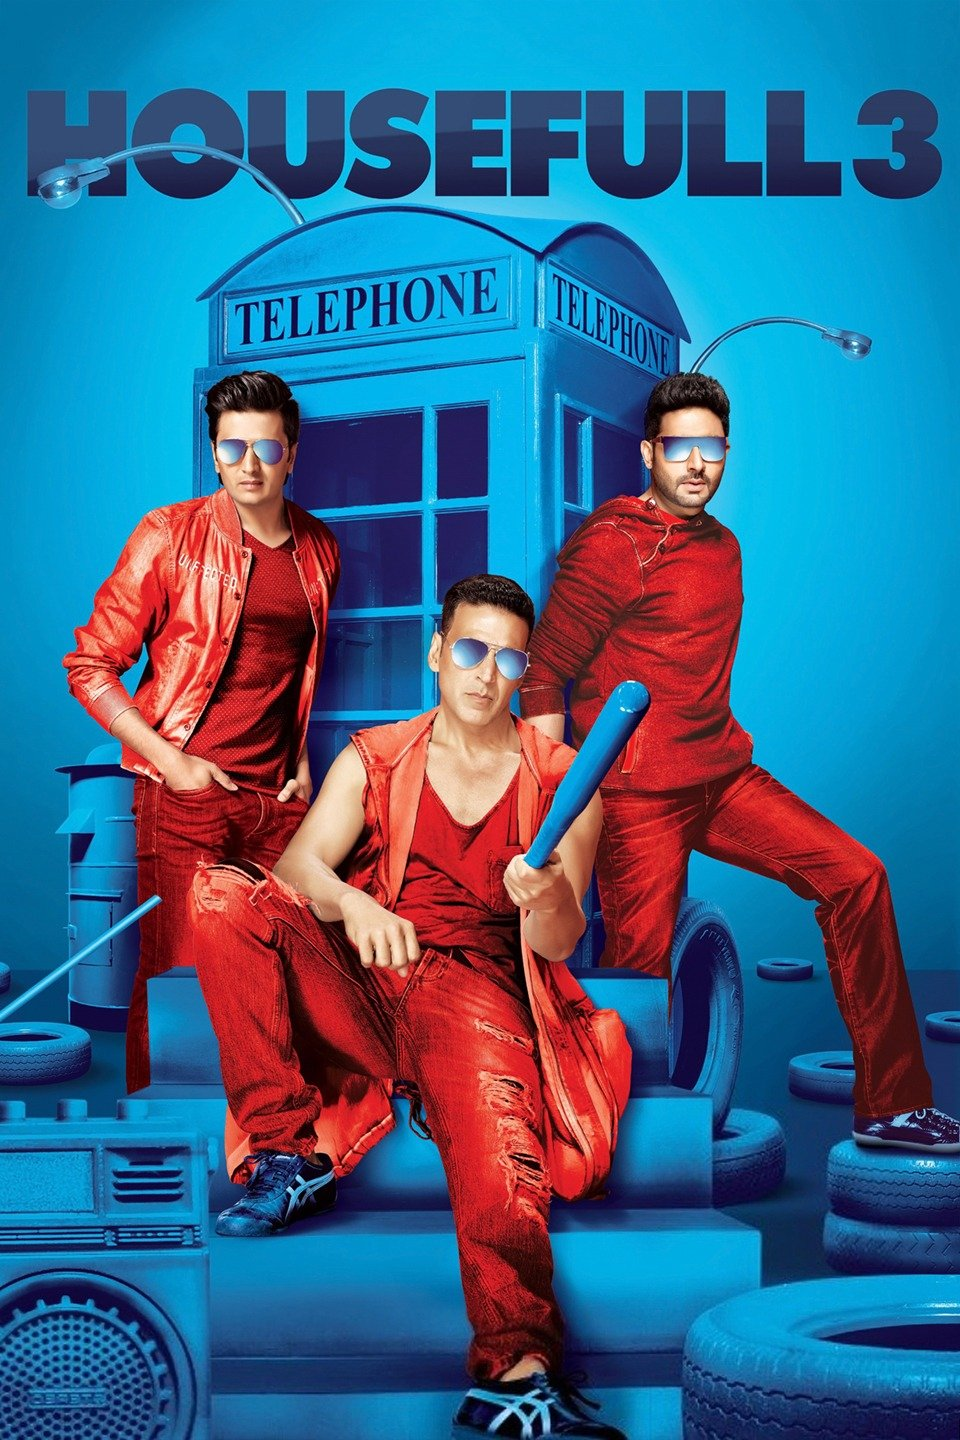 Housefull 3 Hindi Movie Free Download 2016 720p BluRay